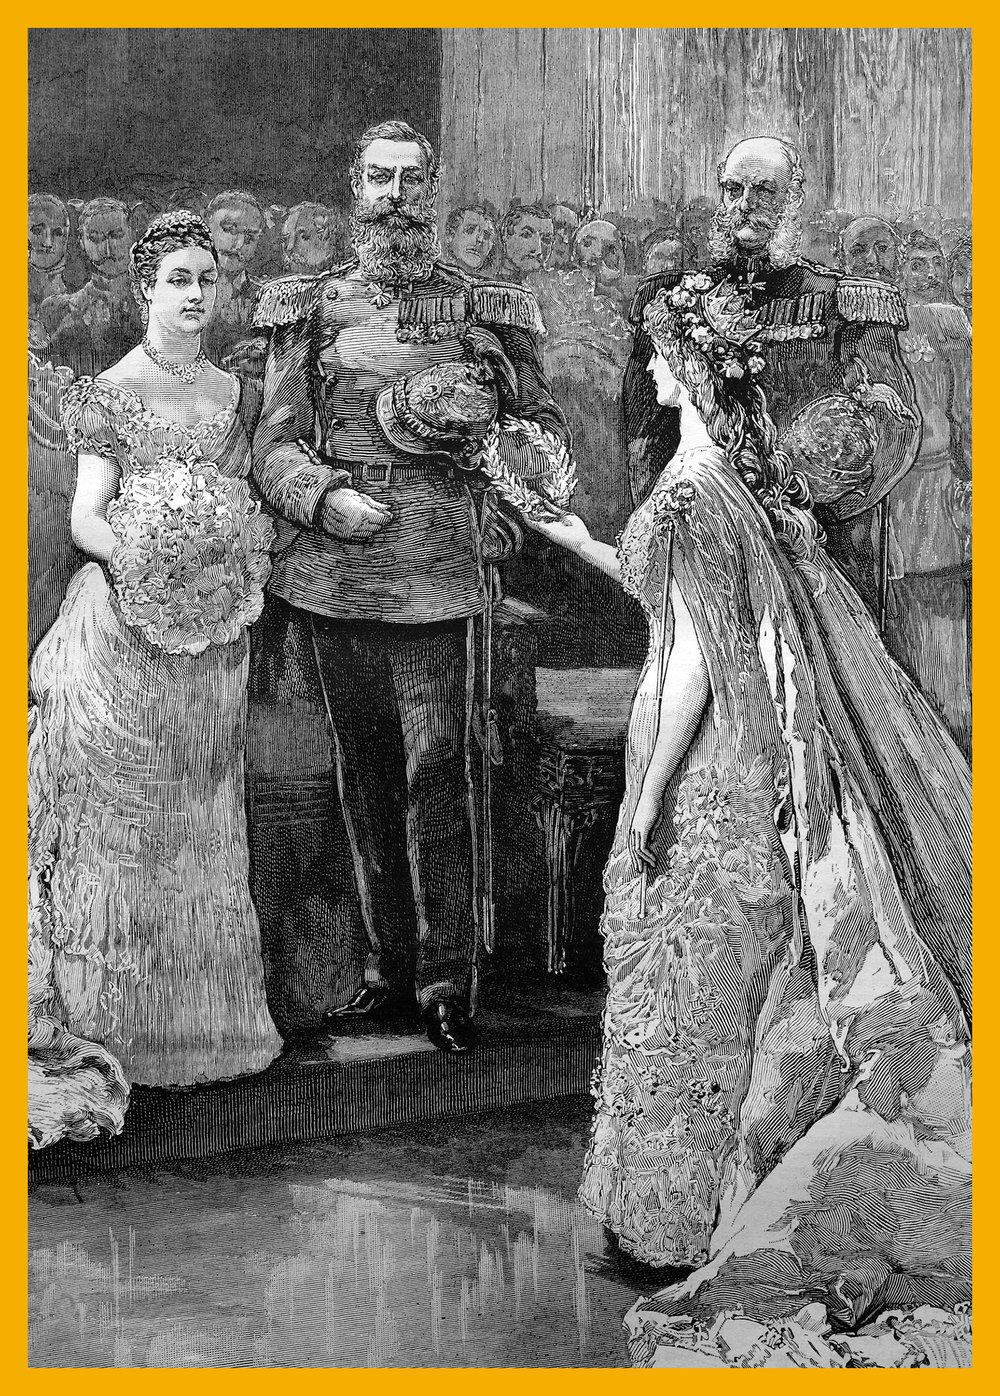 "The silver wedding of the imperial prince and princess of Germany, the koenigin minne"" or ""queen of love"" presenting a silver wreath to the imperial princess, historical illustration, 1884. Bildagentur-online/uig via Getty Images"